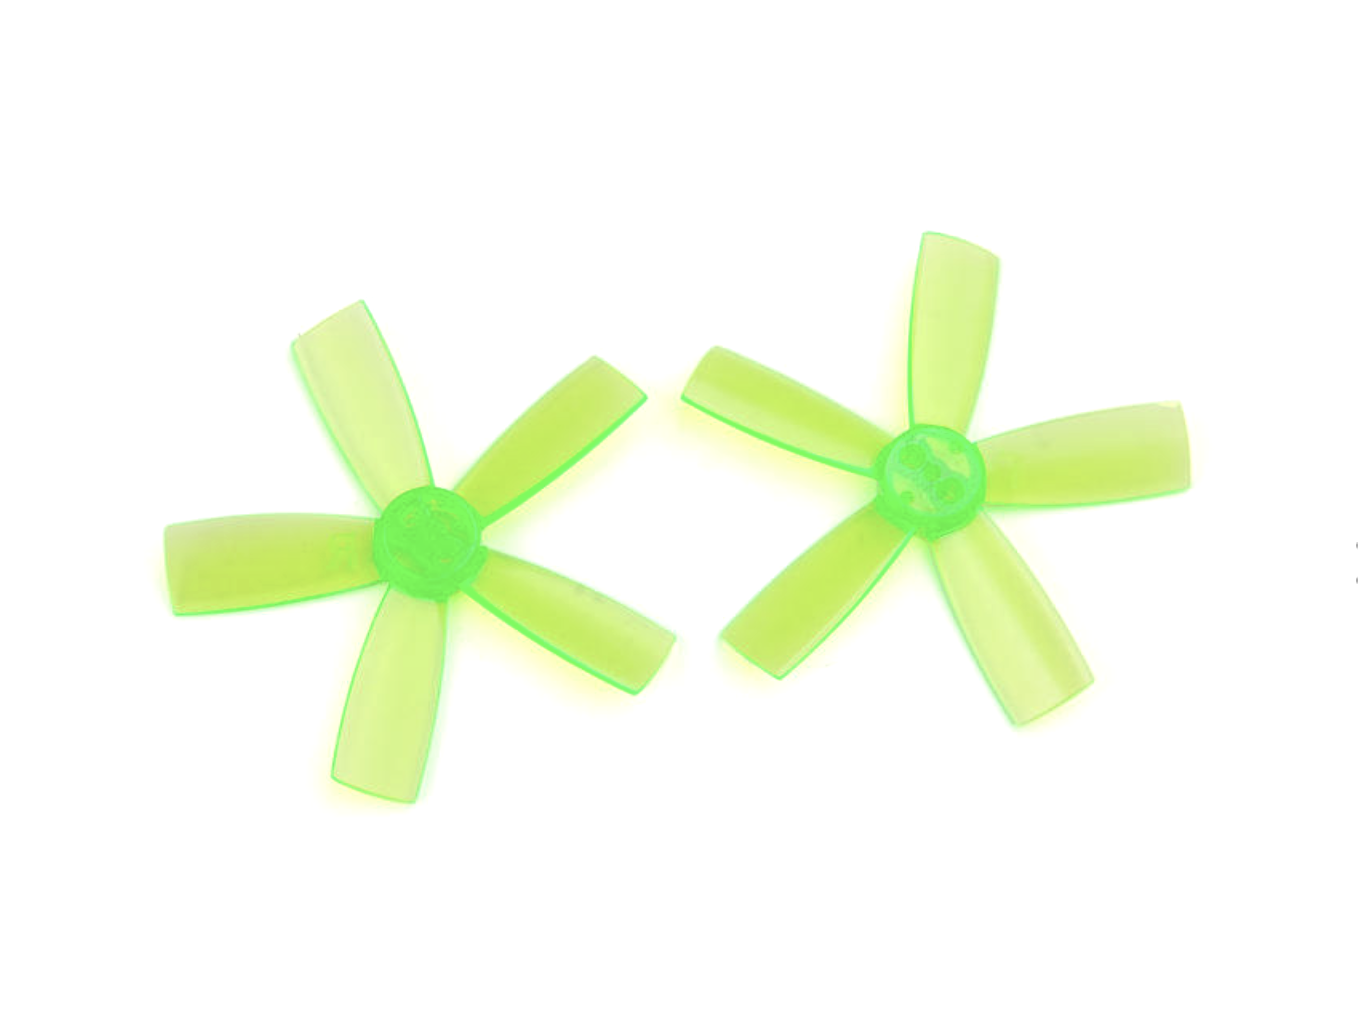 Racerstar 1935 Durable 5-Blade Propeller (10CW, 10CCW) - Green